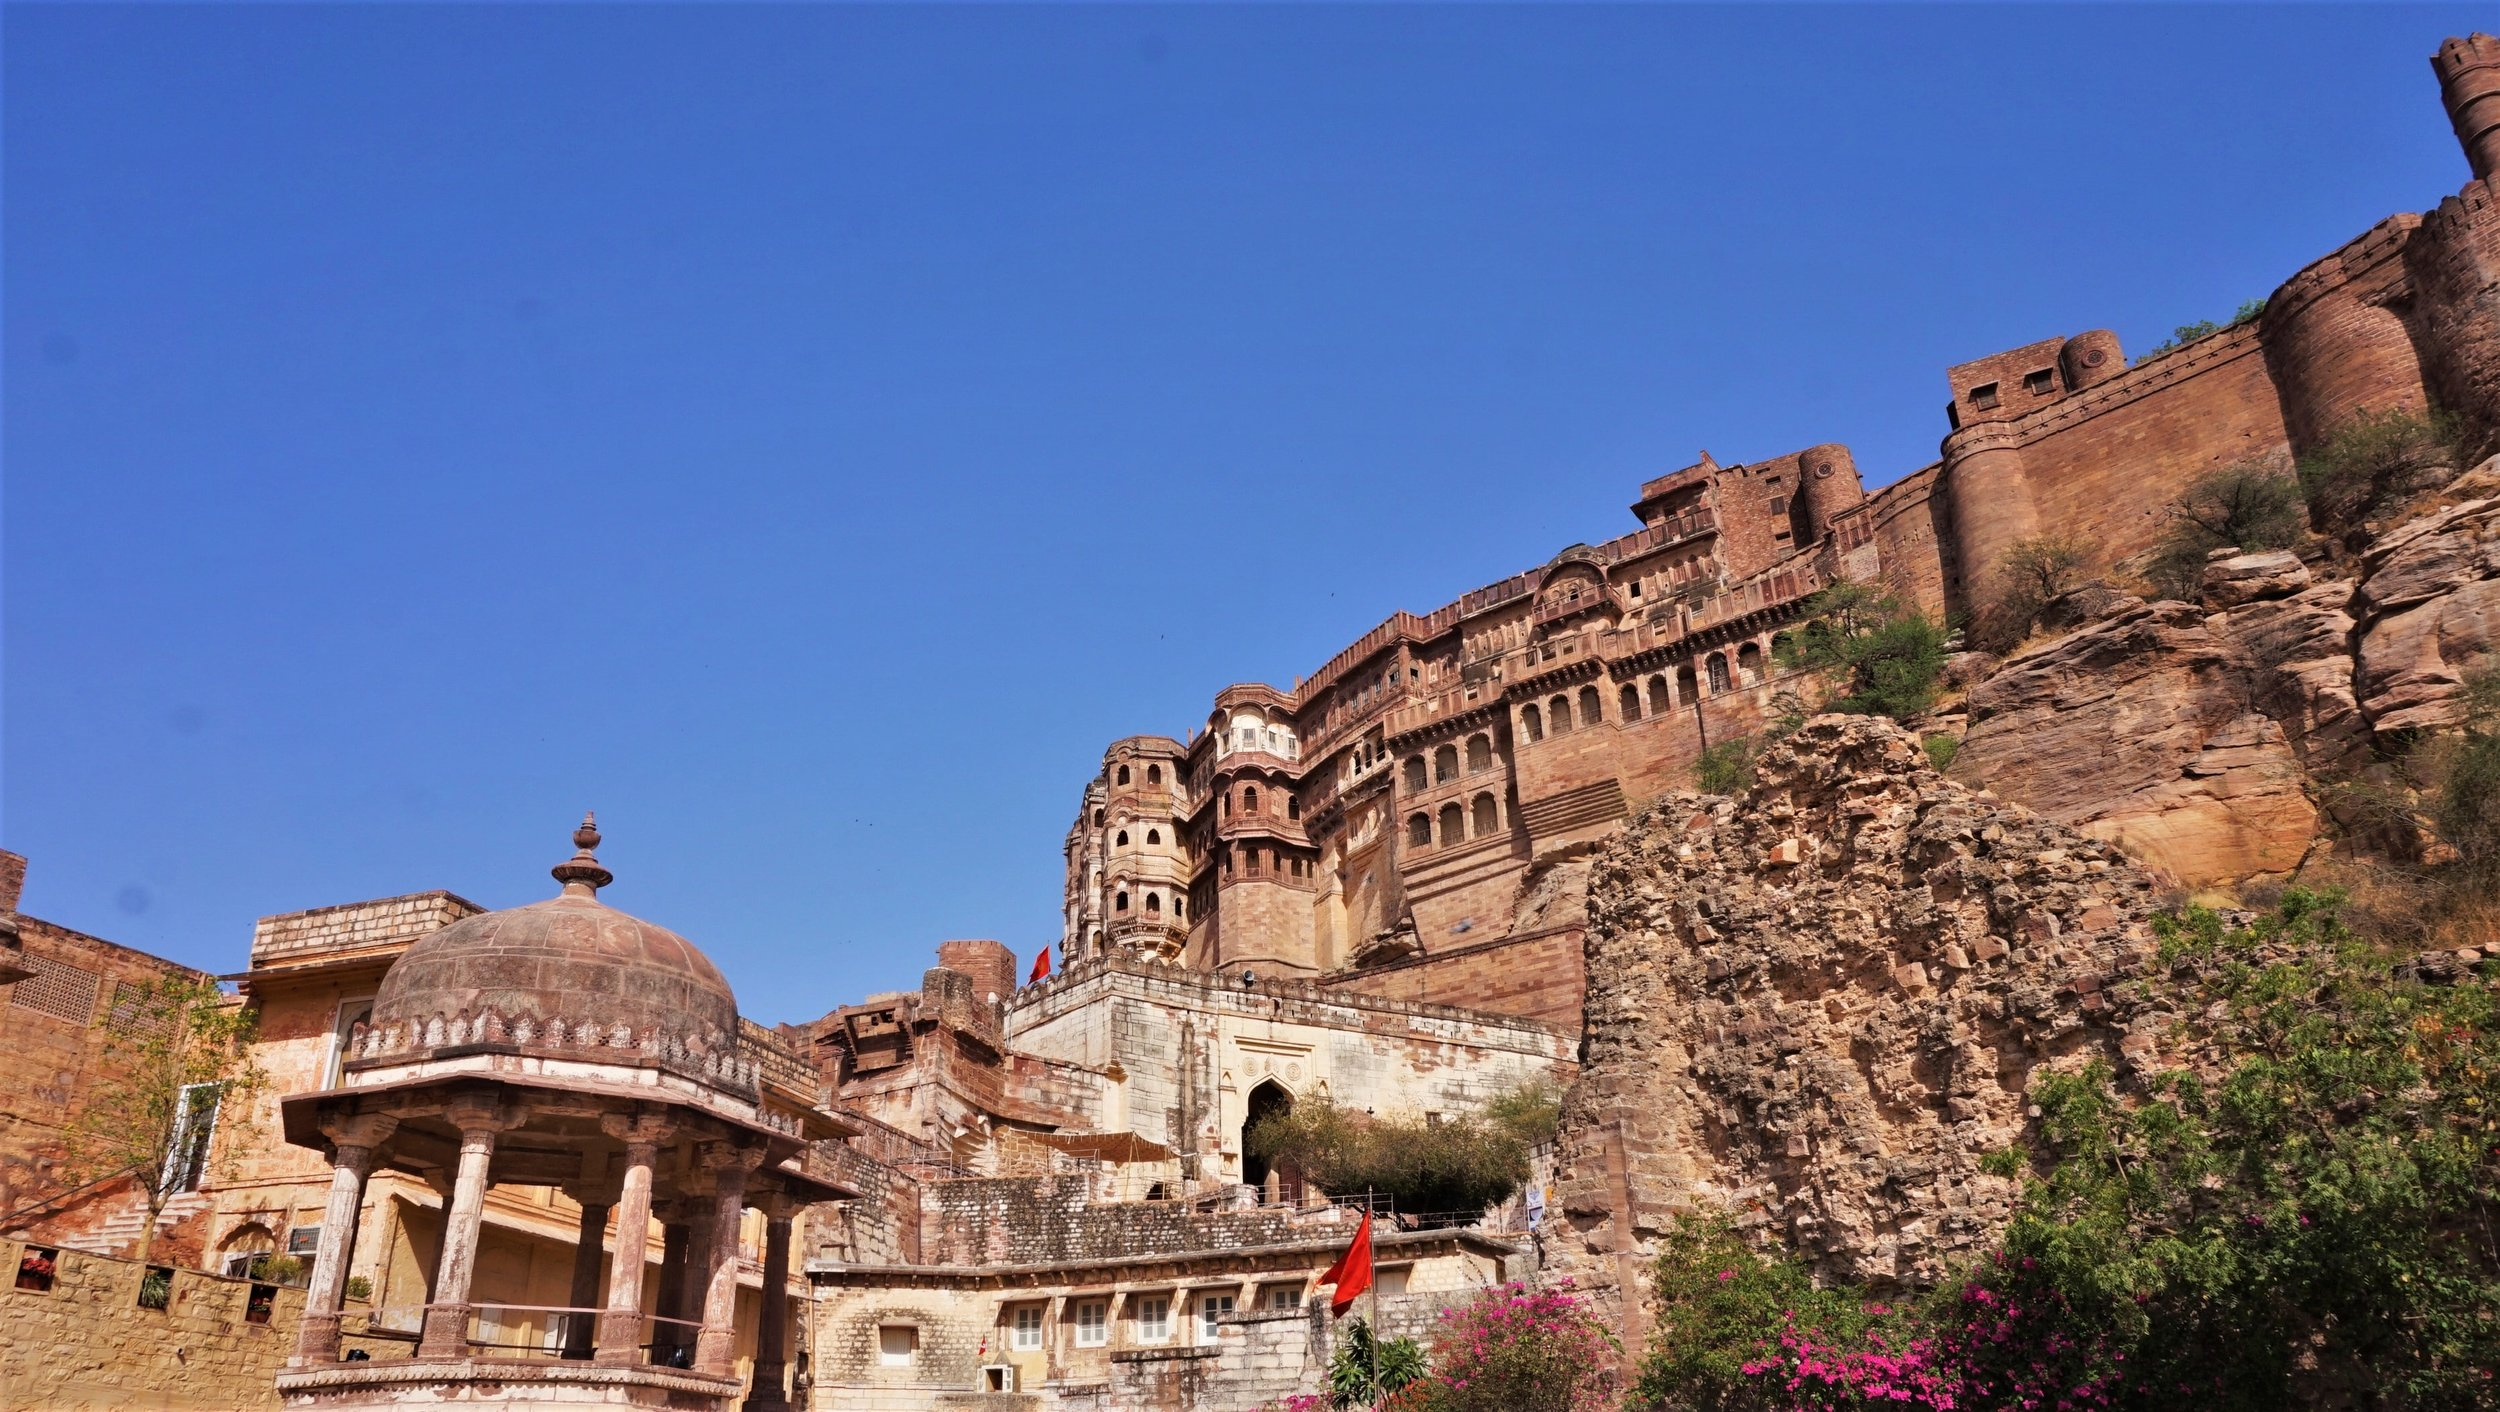 Jodhpur Fort is a very beautiful old structure and is one of the best things to do in Rajasthan.